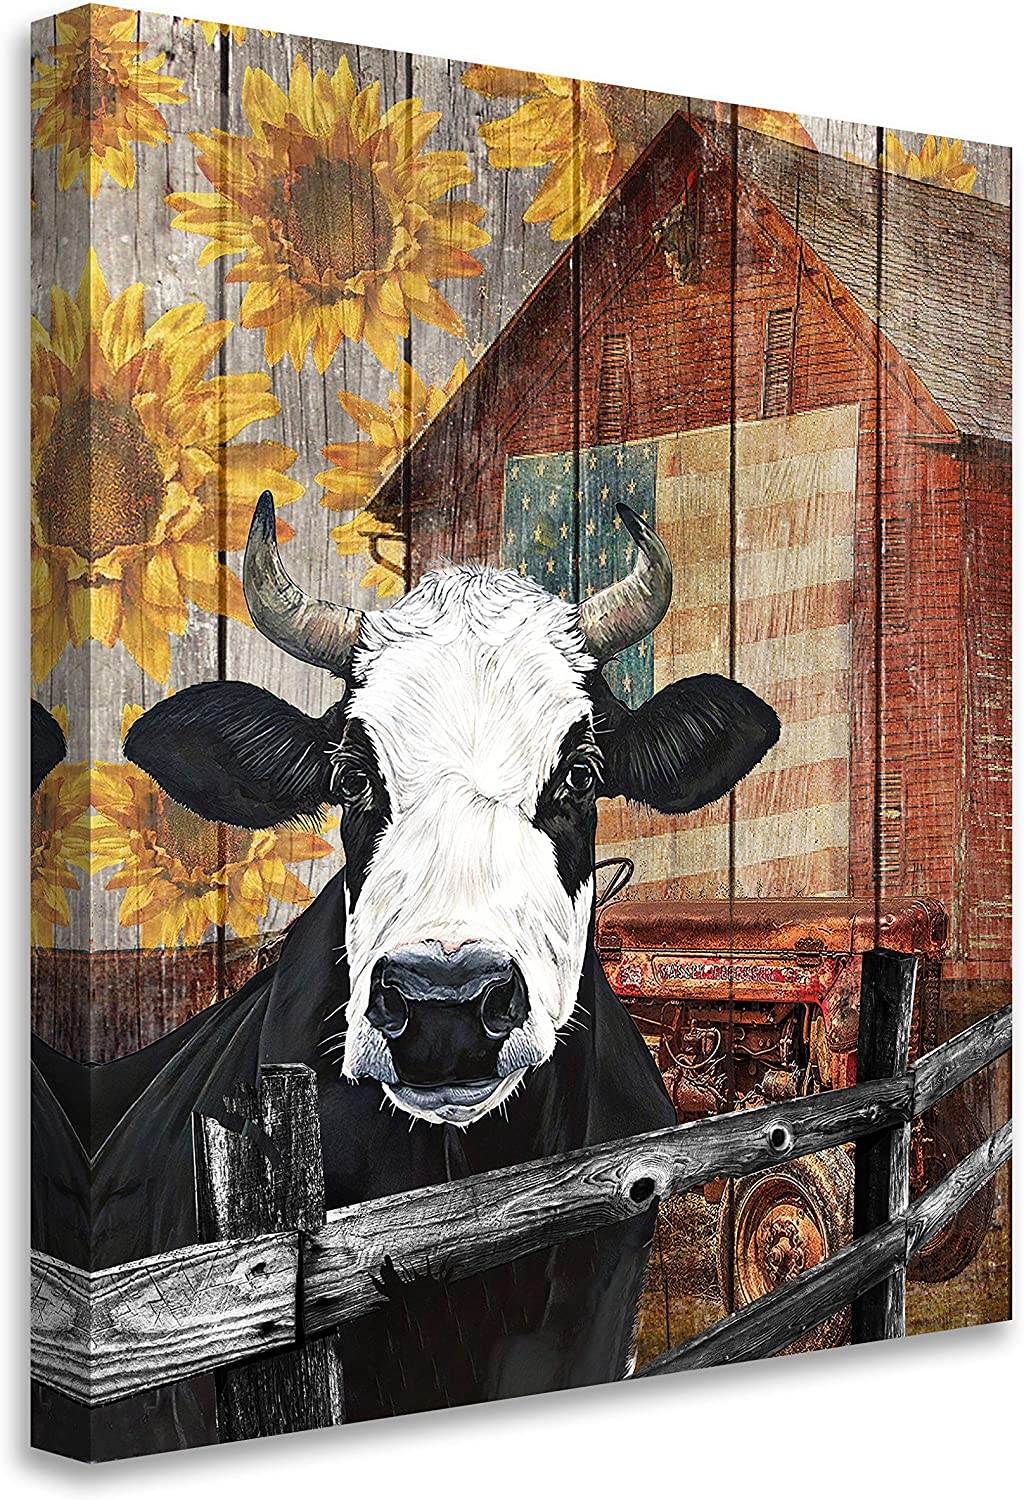 Rustic Funny Farm Cow Sunflower Prints Canvas Wall Art For Living Room Farmhouse Cow Paintings Wall Art Contemporary Art Decor Home Decoration Giclee Artwork Stretched And Framed Ready To Hang 11x14 Inch